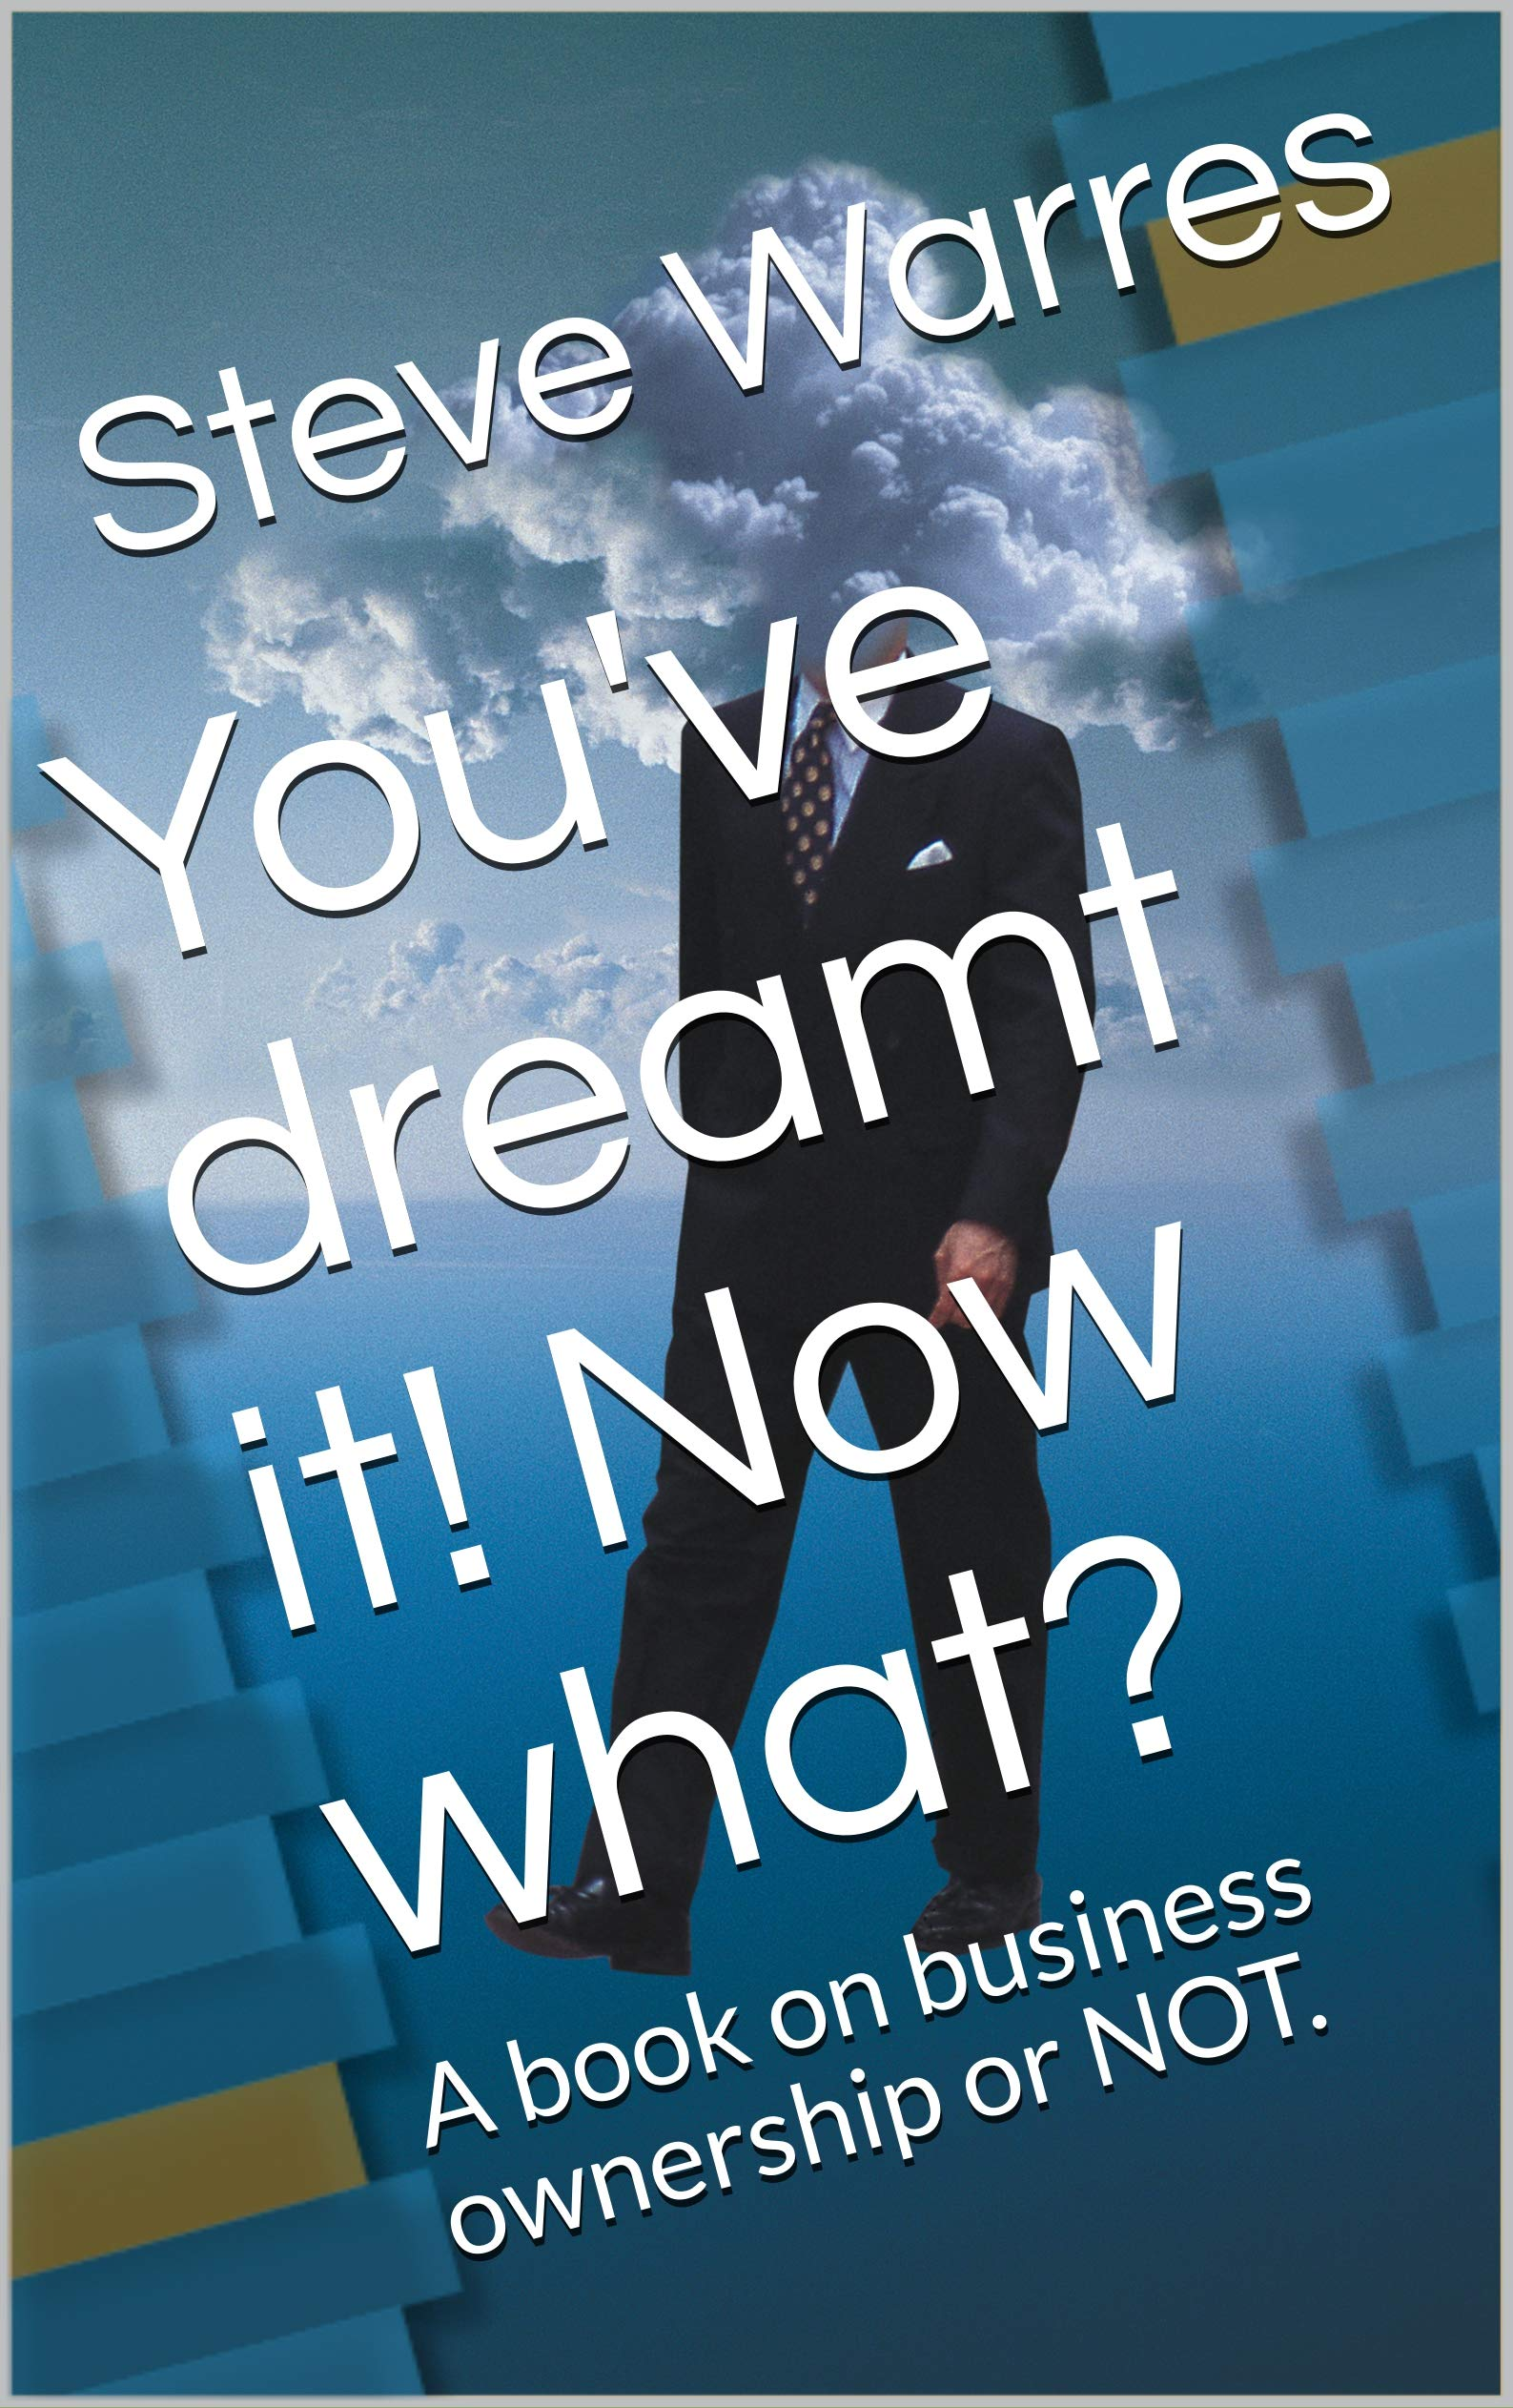 You've dreamt it! Now what?: A book on business ownership or NOT.